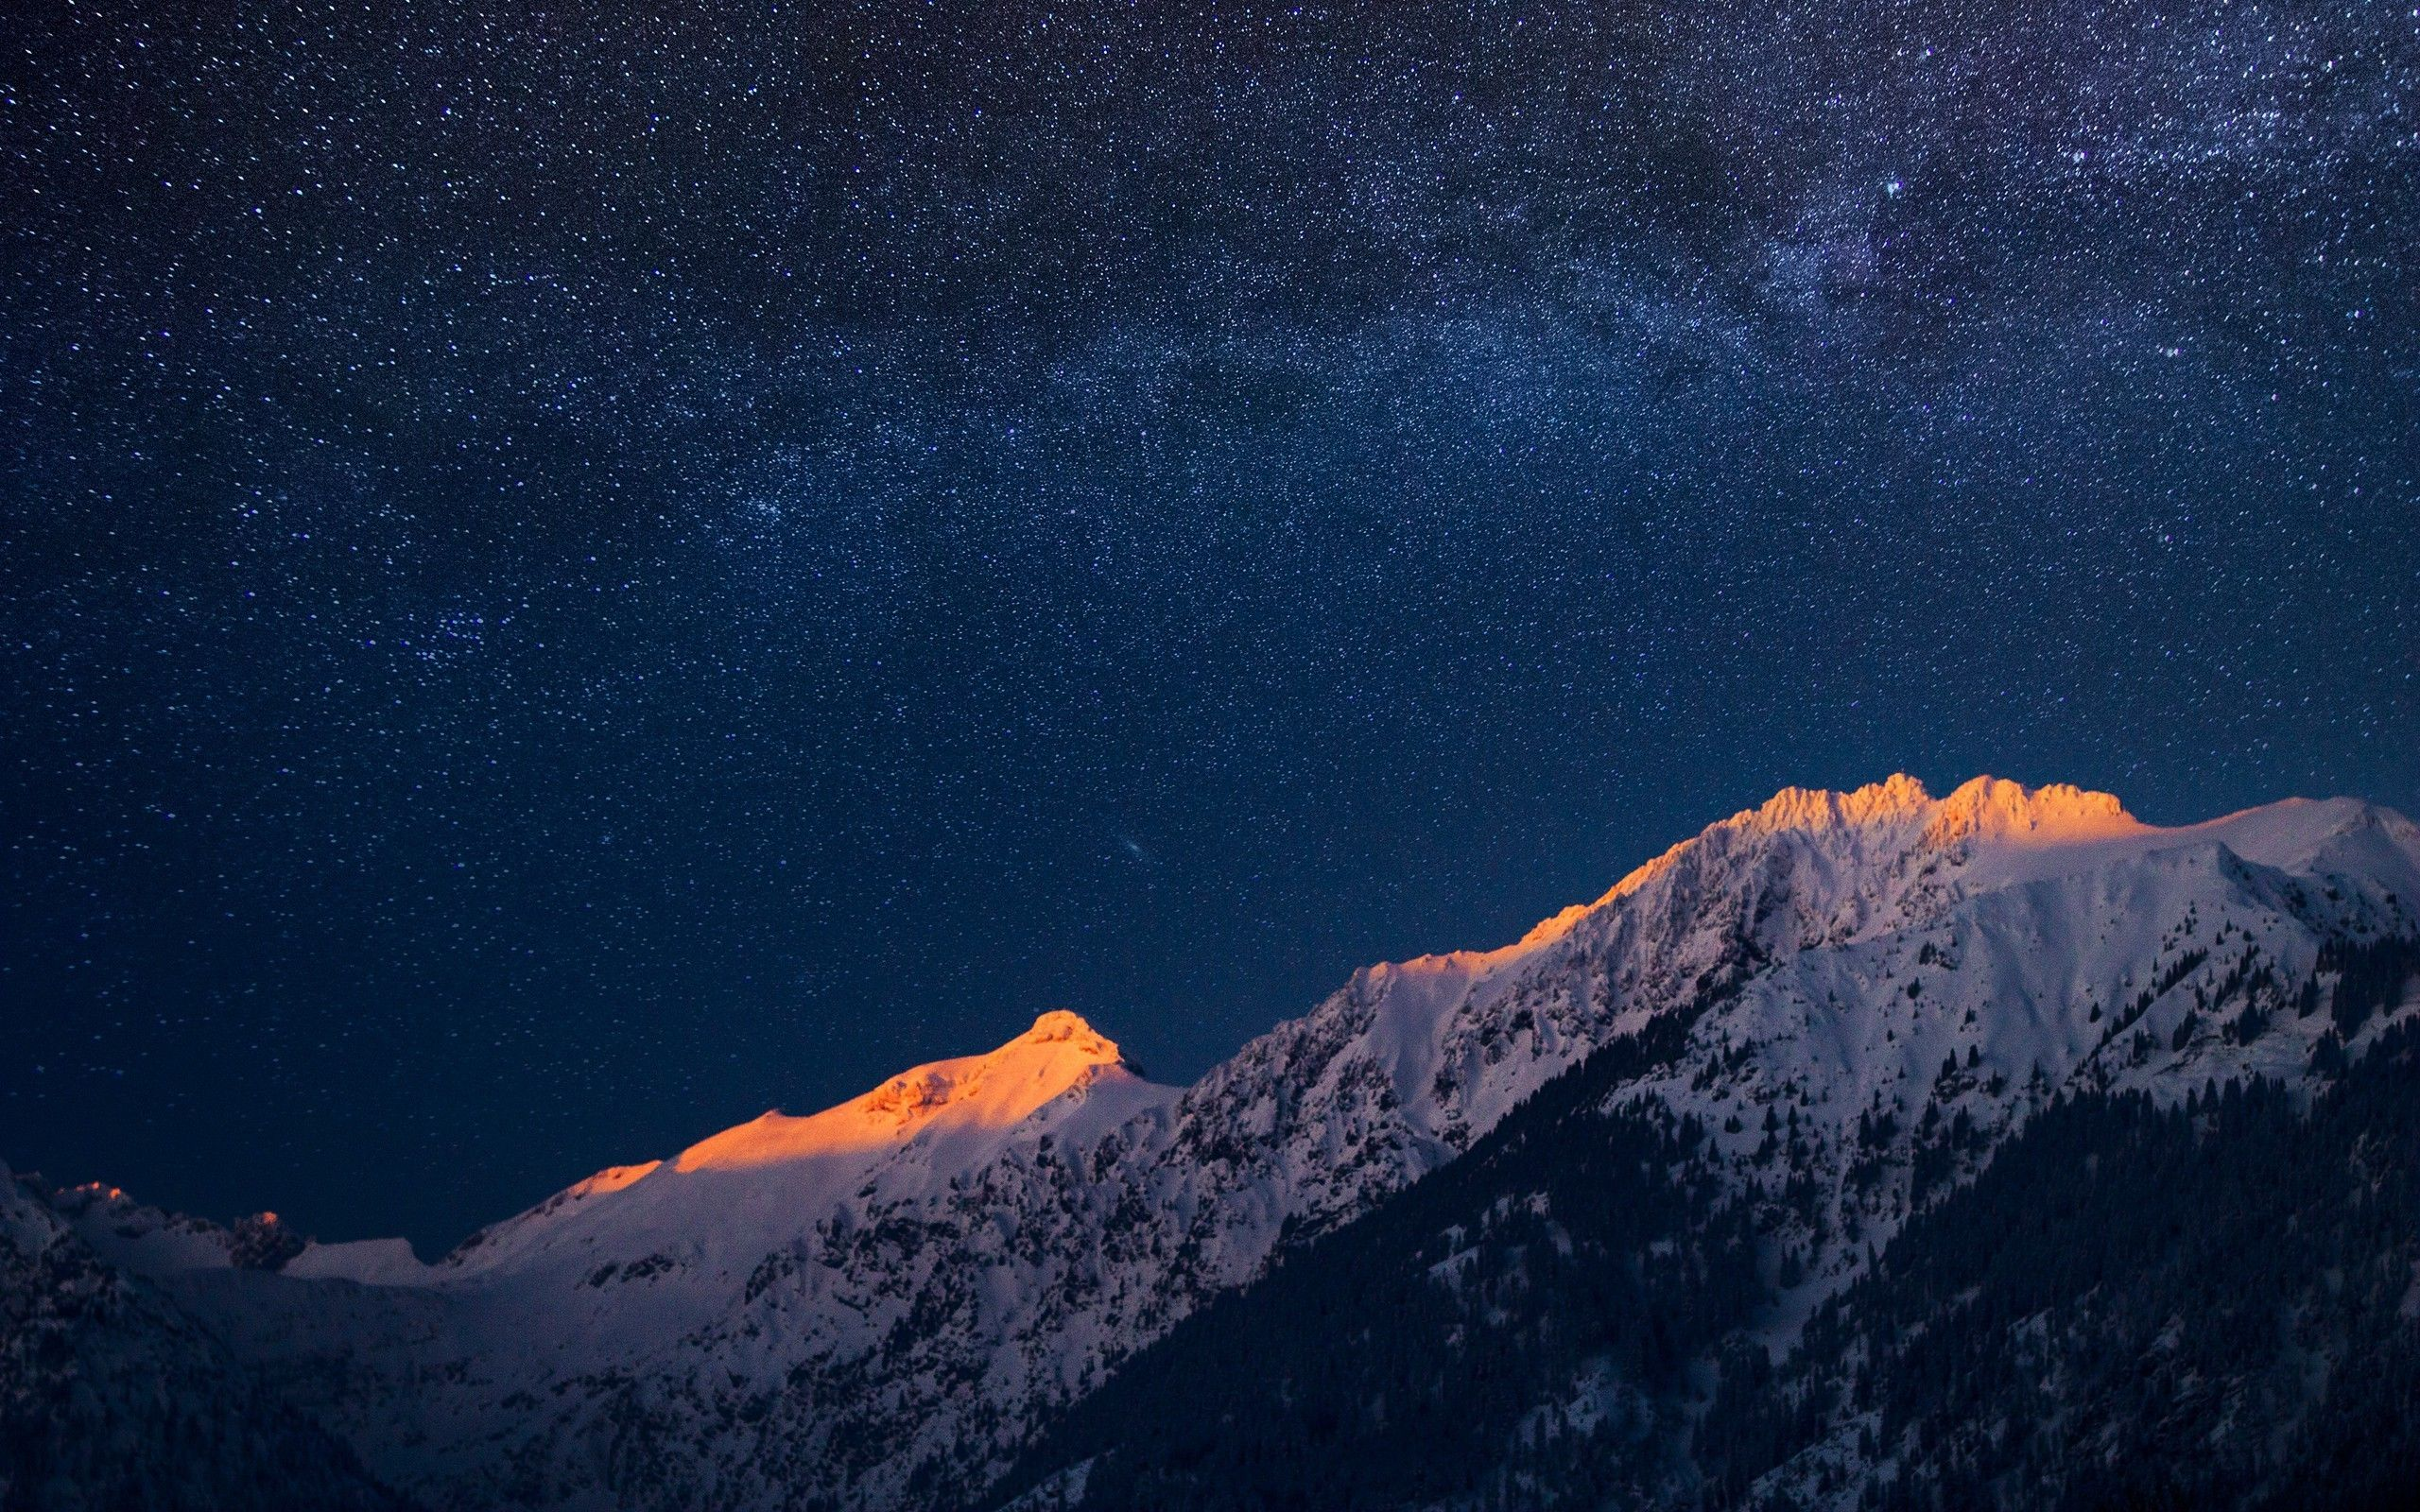 Night Mountain Wallpapers Top Free Night Mountain Backgrounds Wallpaperaccess